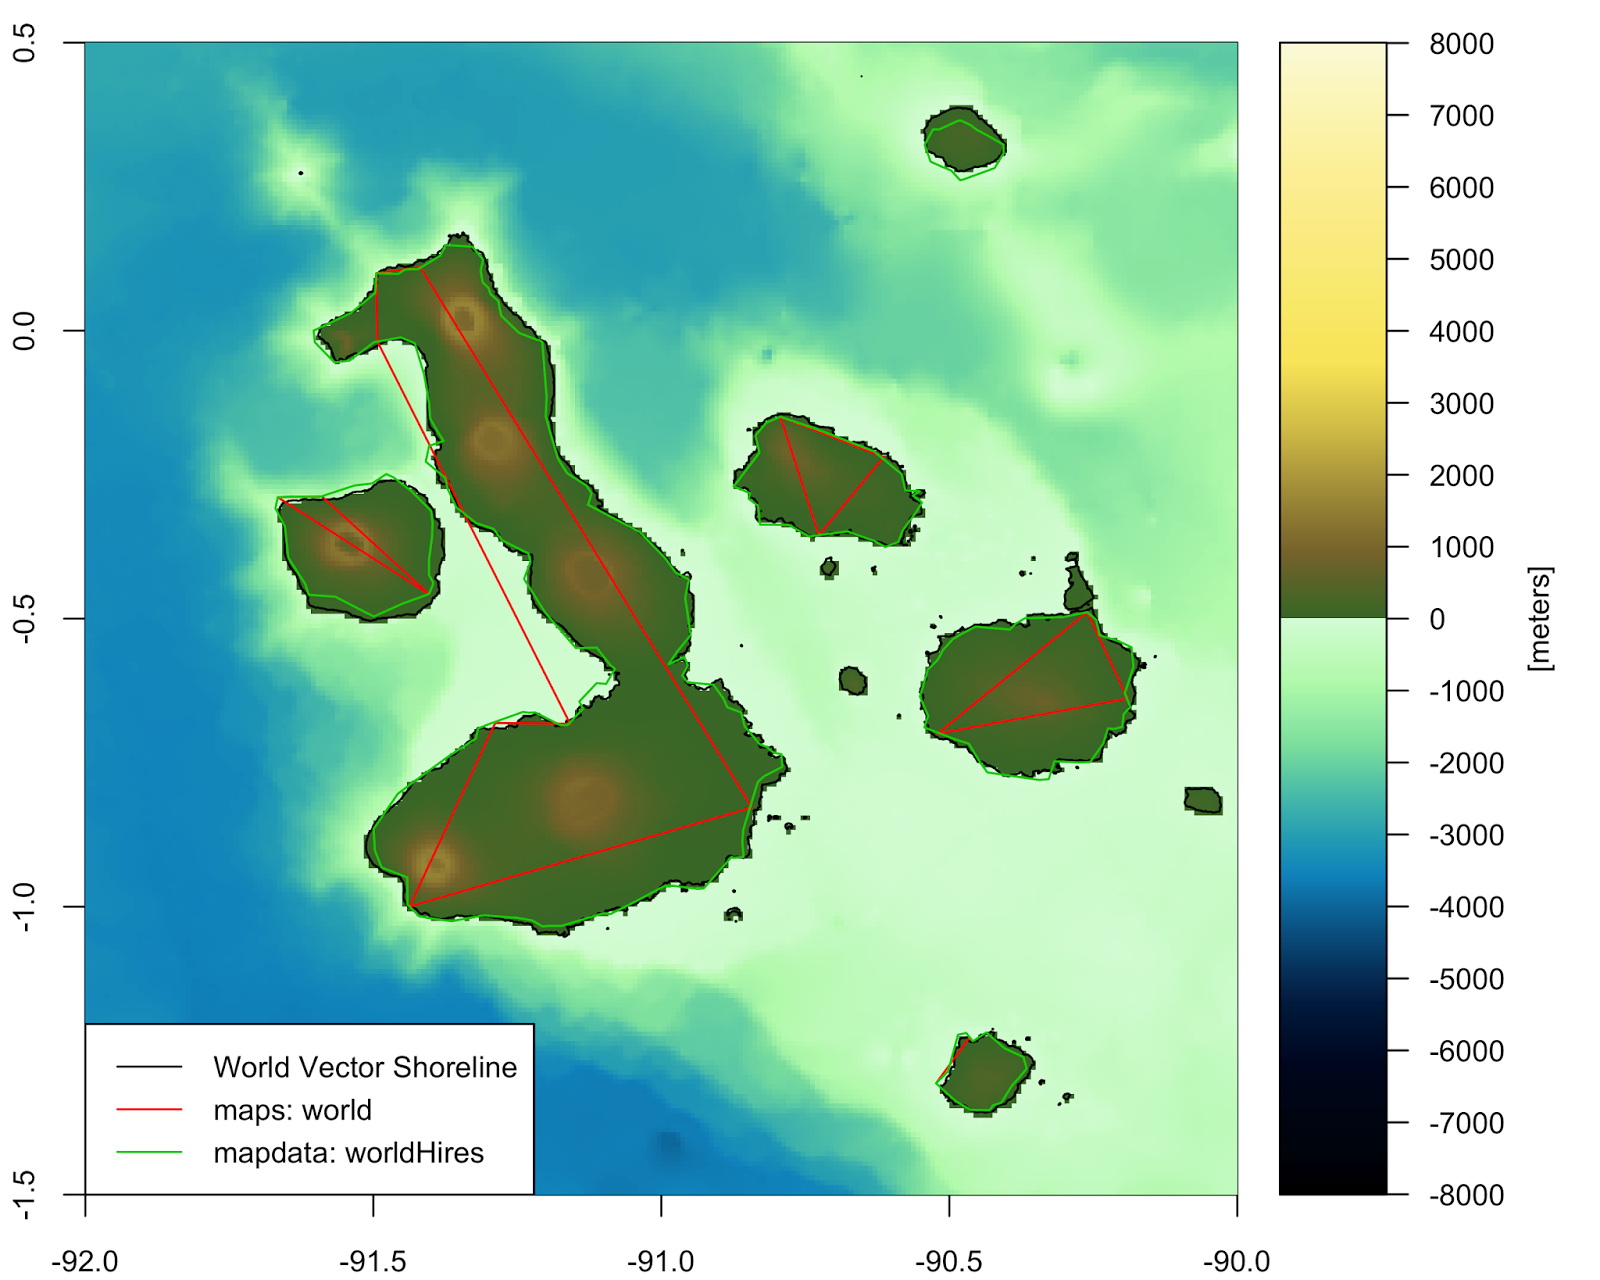 Importing bathymetry and coastline data in R